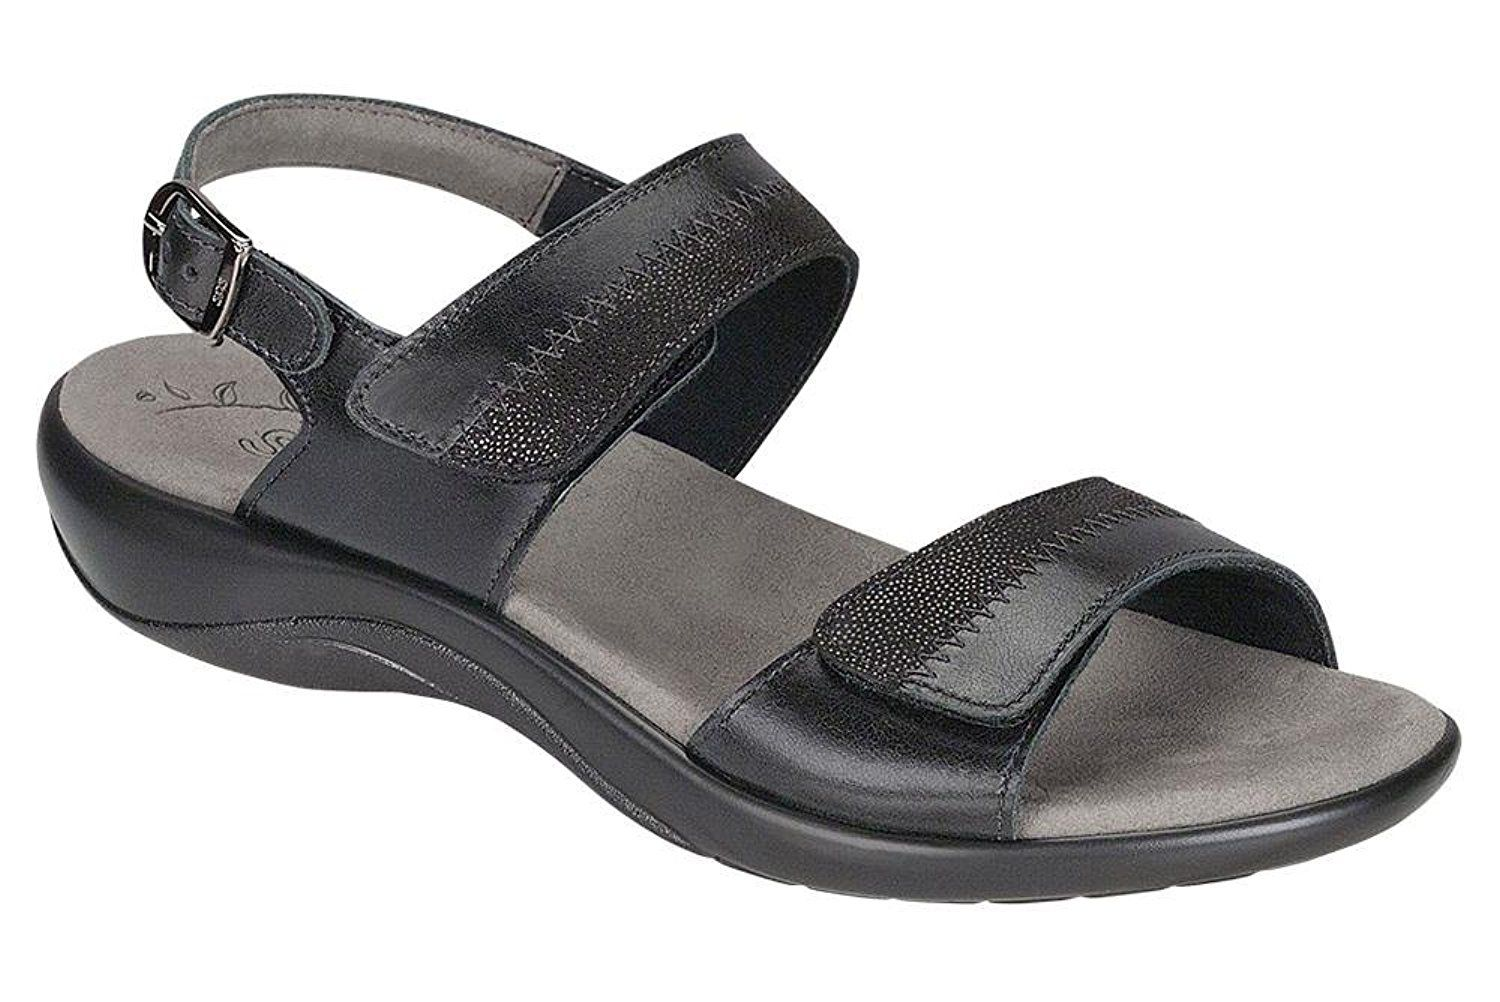 ac681856ff5b The 7 Best Walking Sandals for Women of 2019